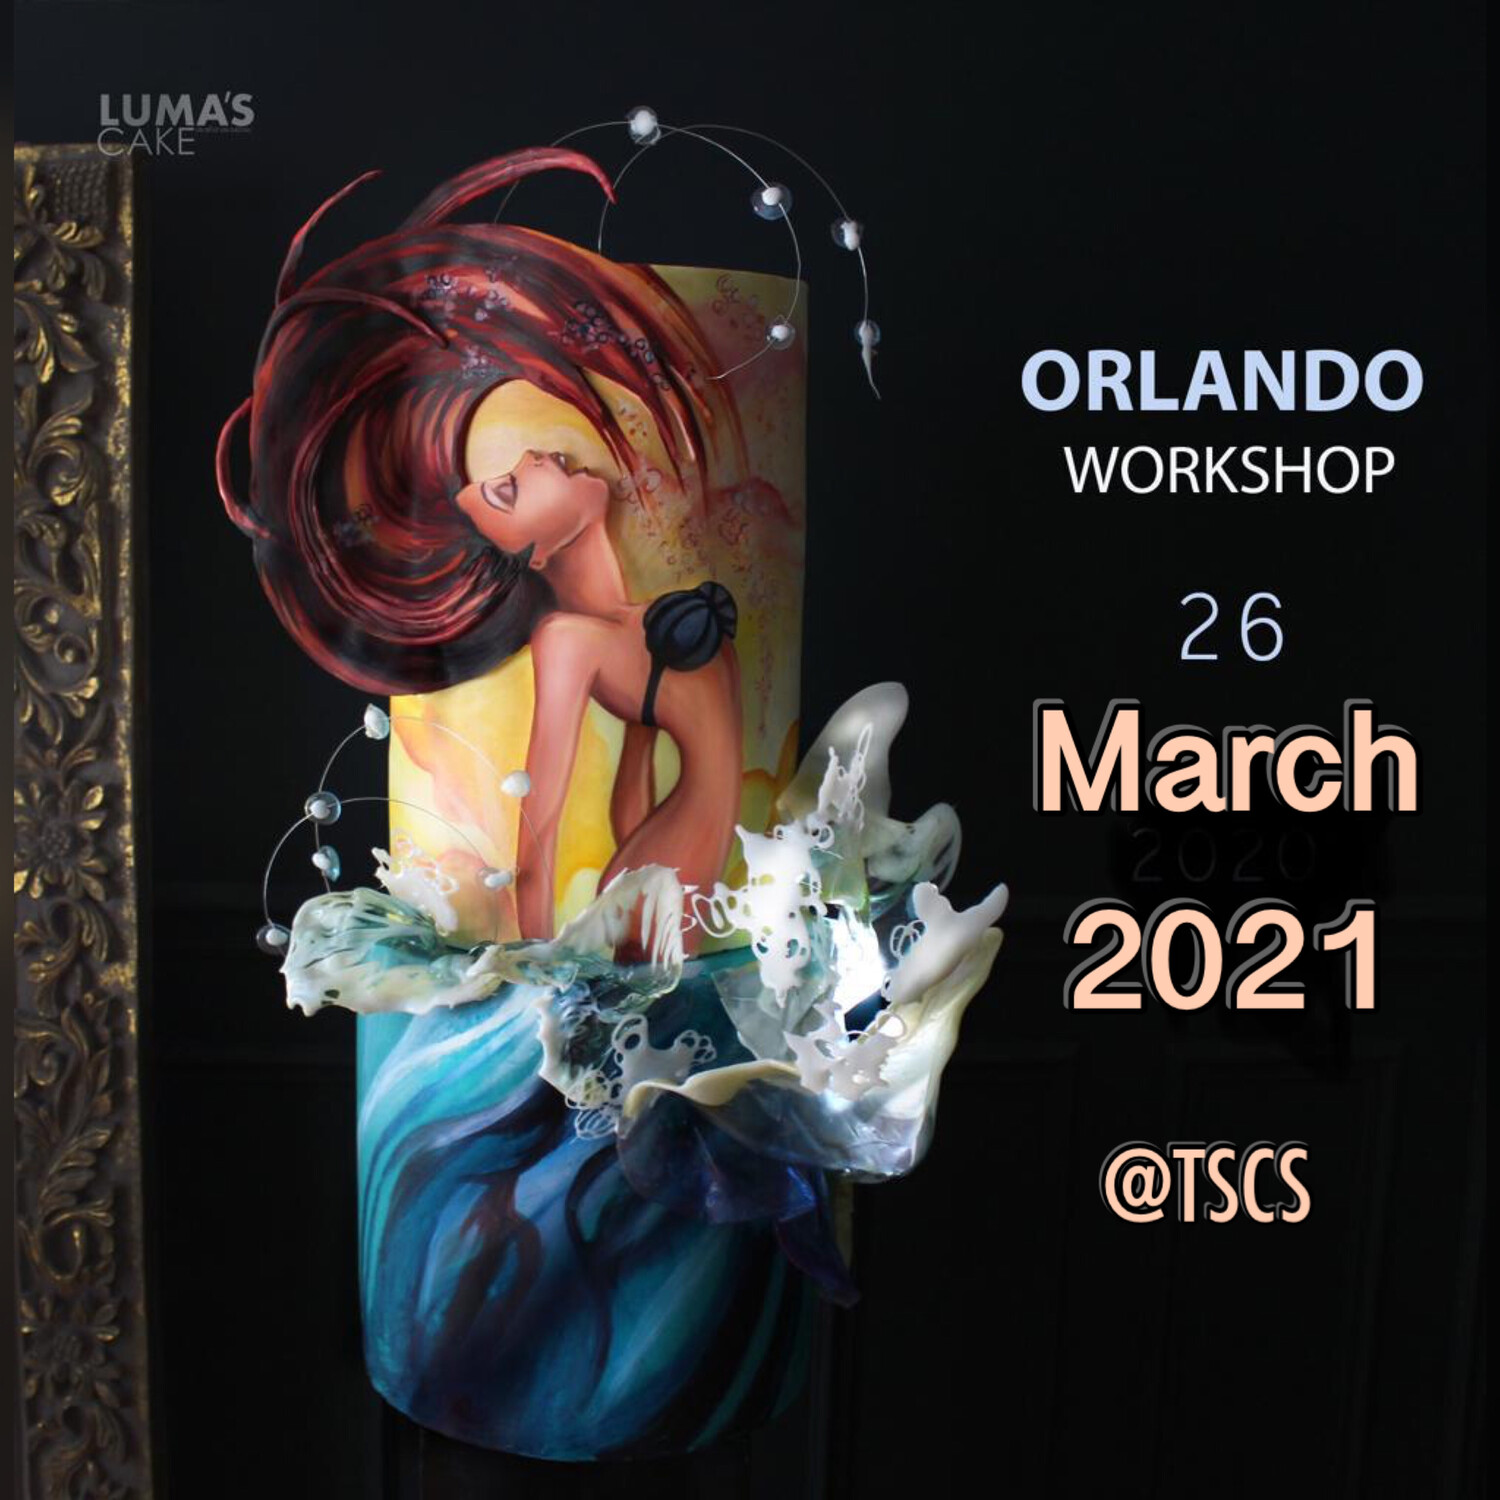 New Date MARCH 26th 2021 La Sirenita Intensive Workshop by Luma's Cakes